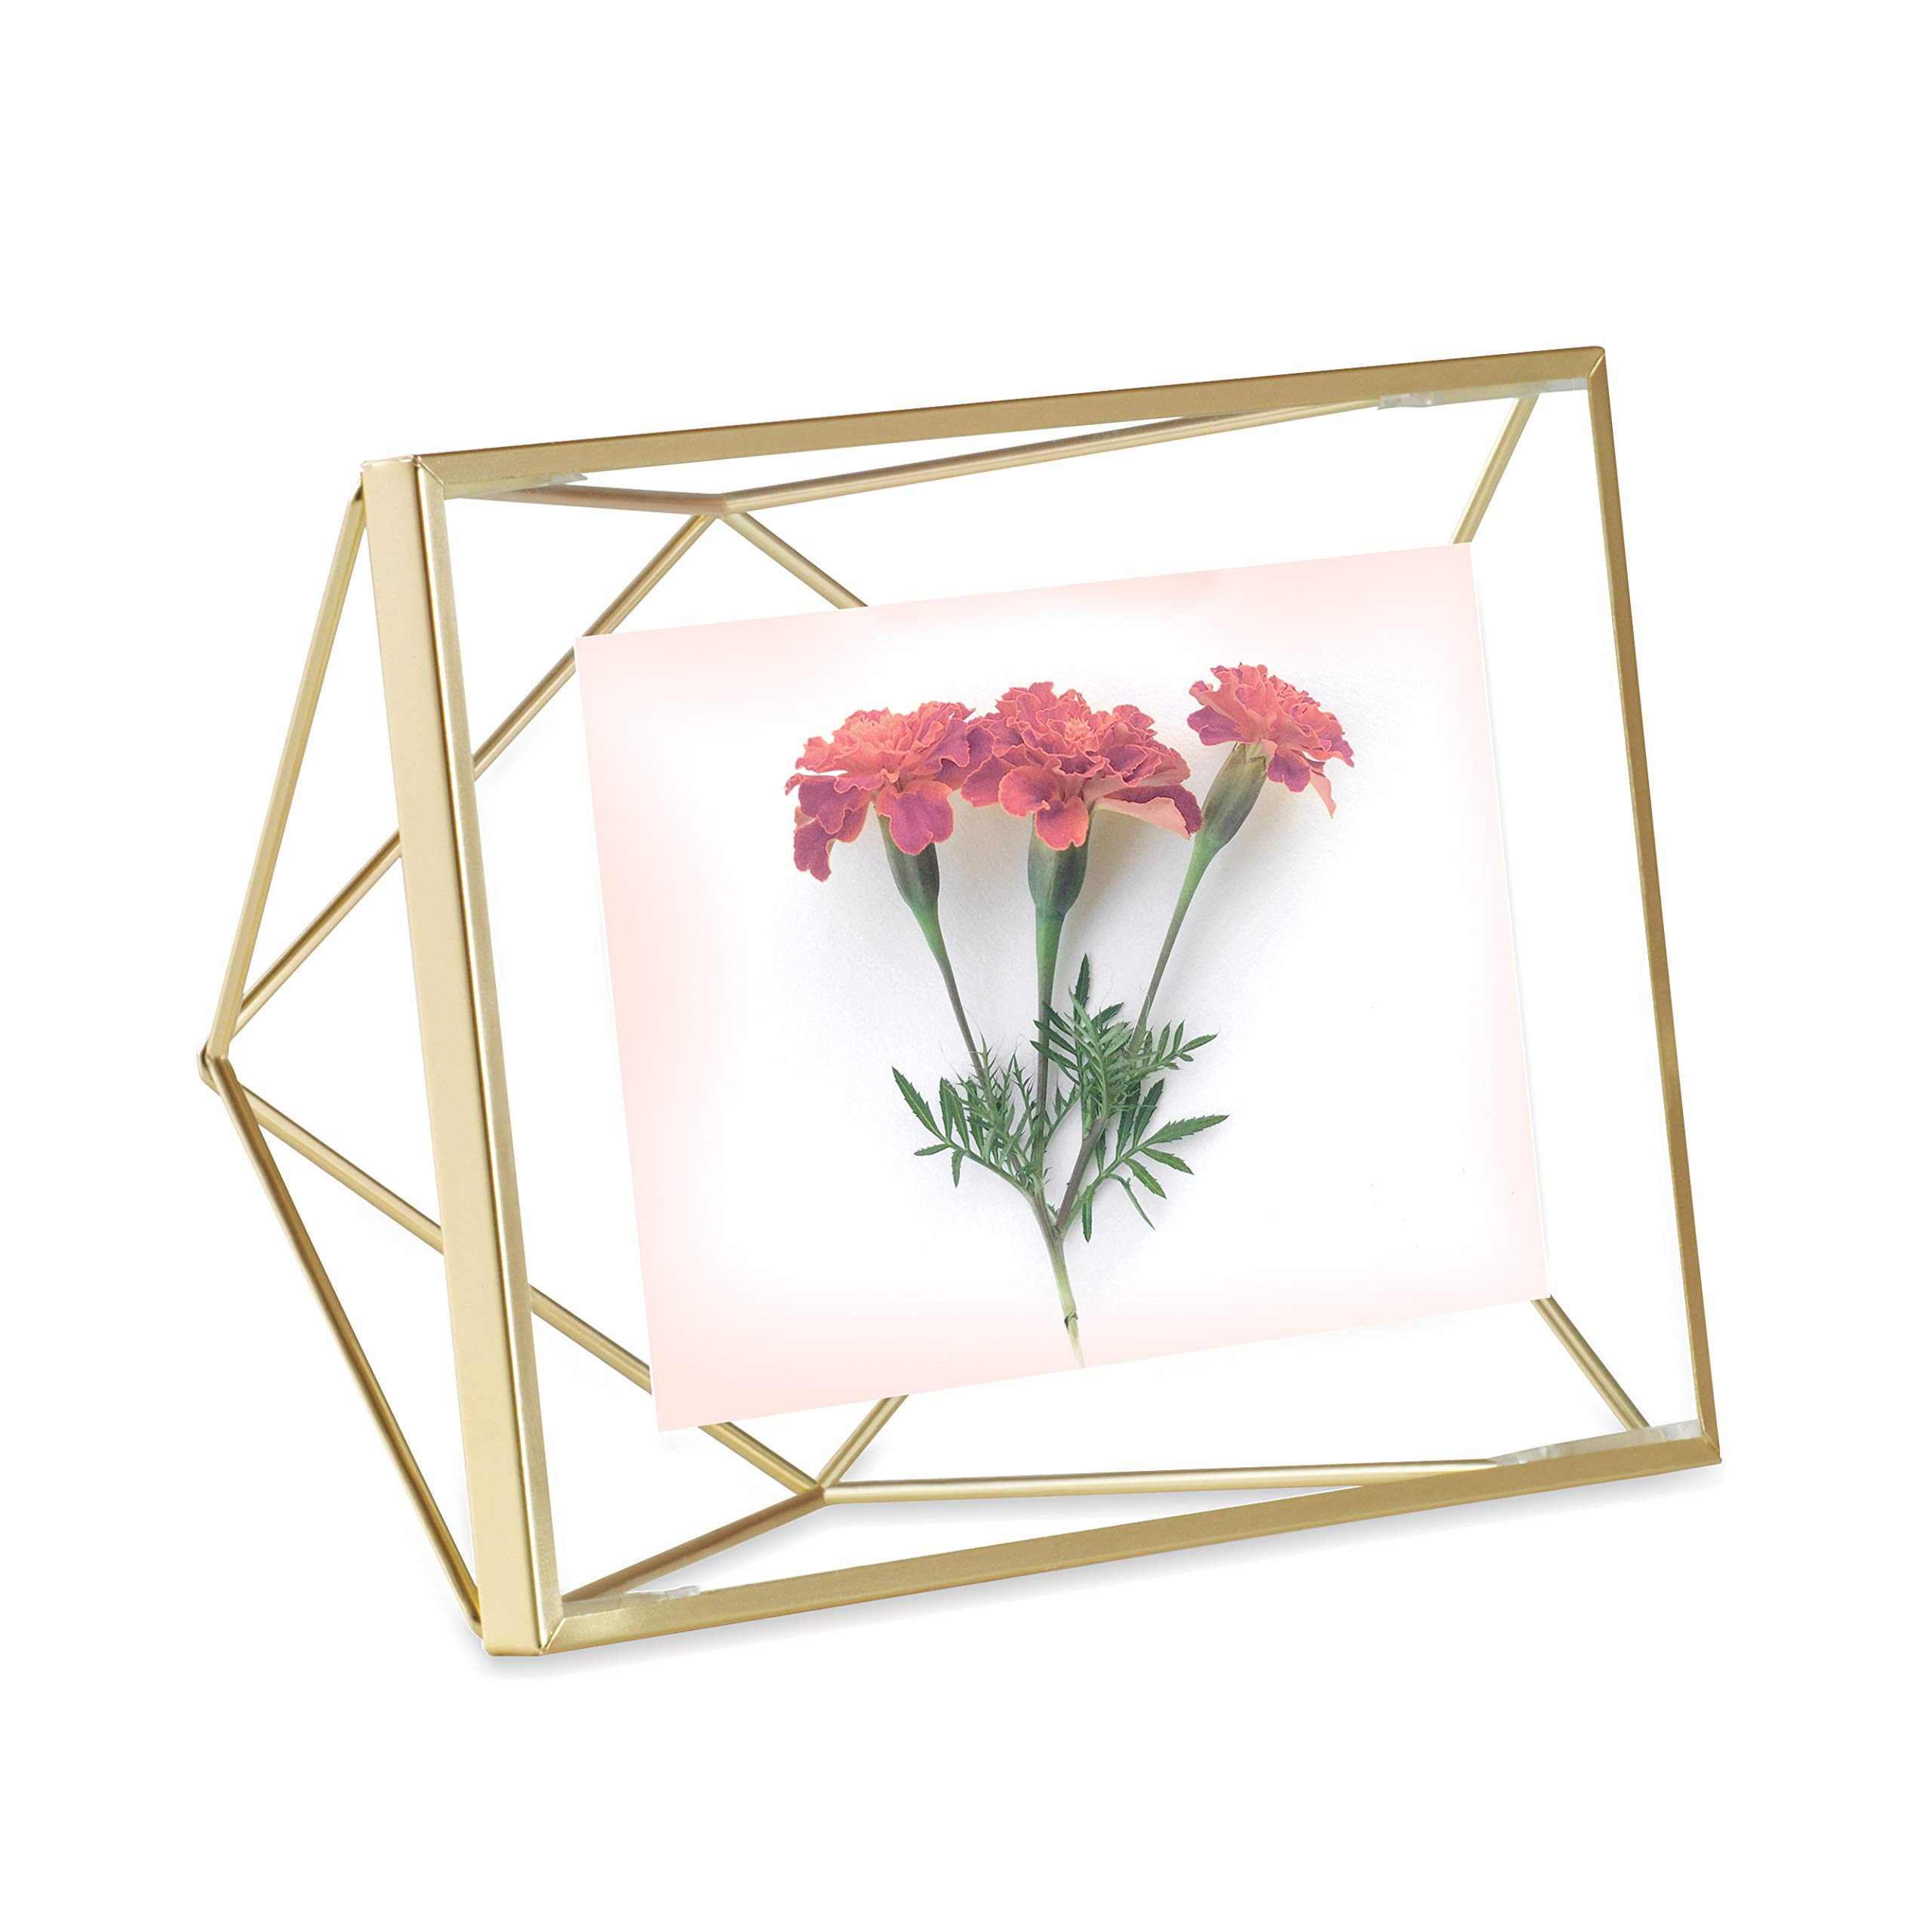 Umbra Prisma Picture Frame, 4x6 Photo Display for Desk or Wall, Brass by Umbra